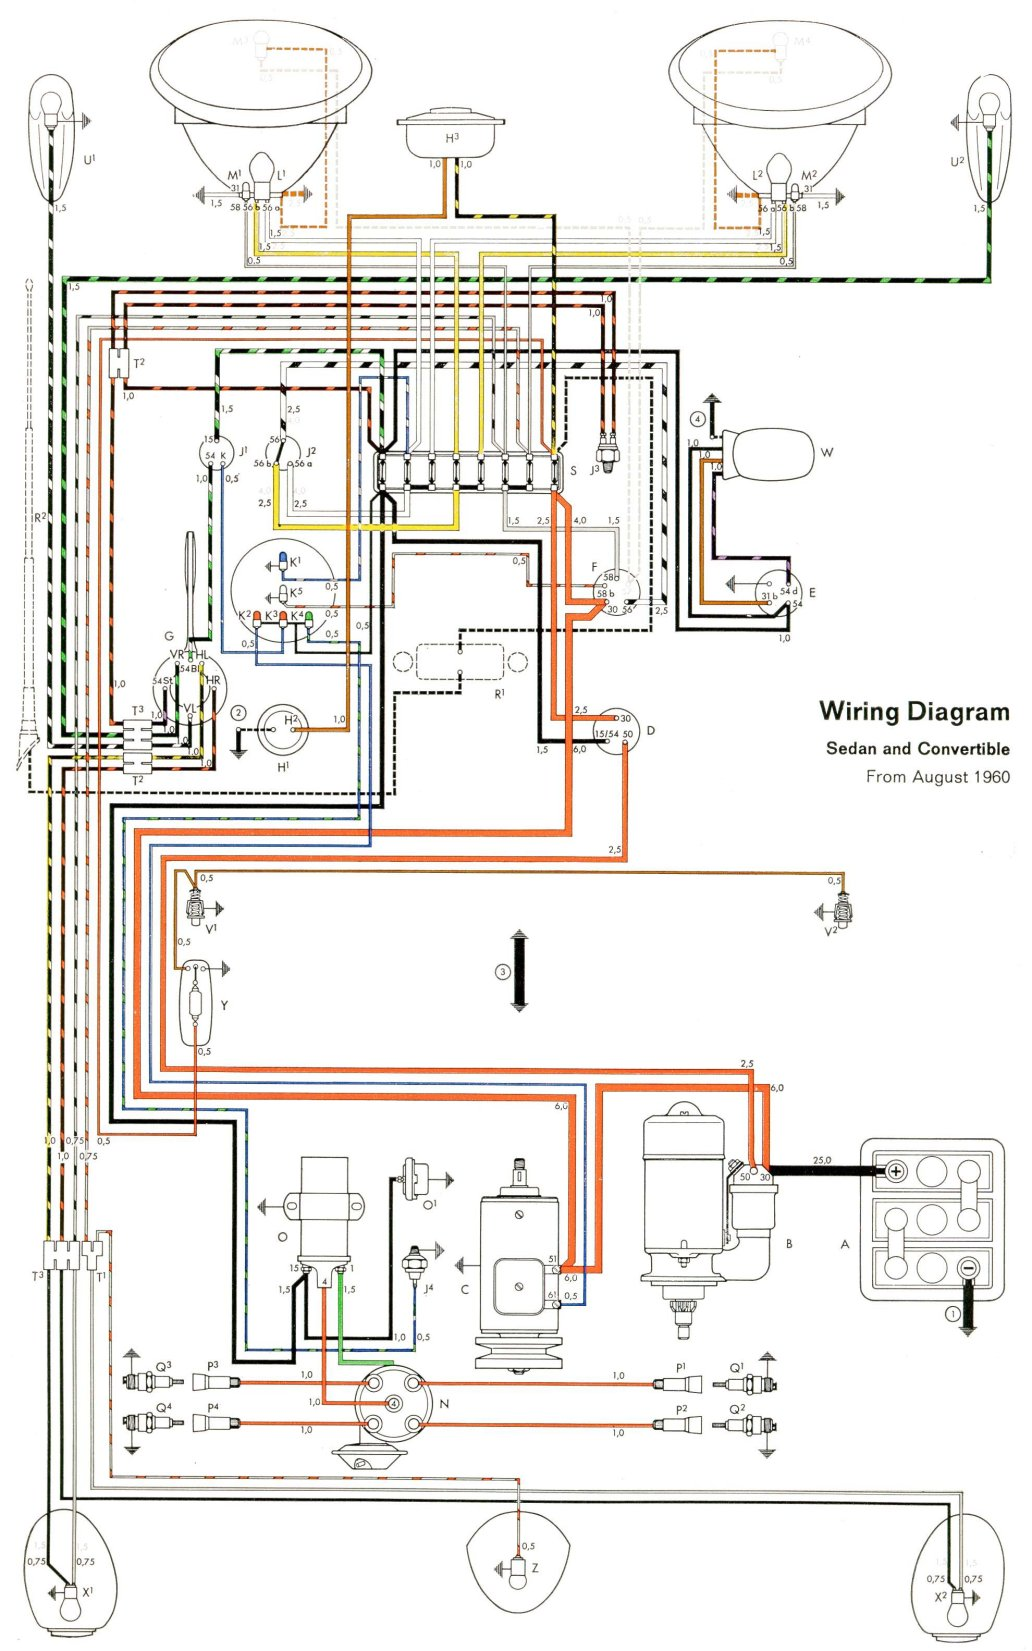 thesamba com type 1 wiring diagrams 69 VW Generator Wiring Diagram 69 VW Generator Wiring Diagram